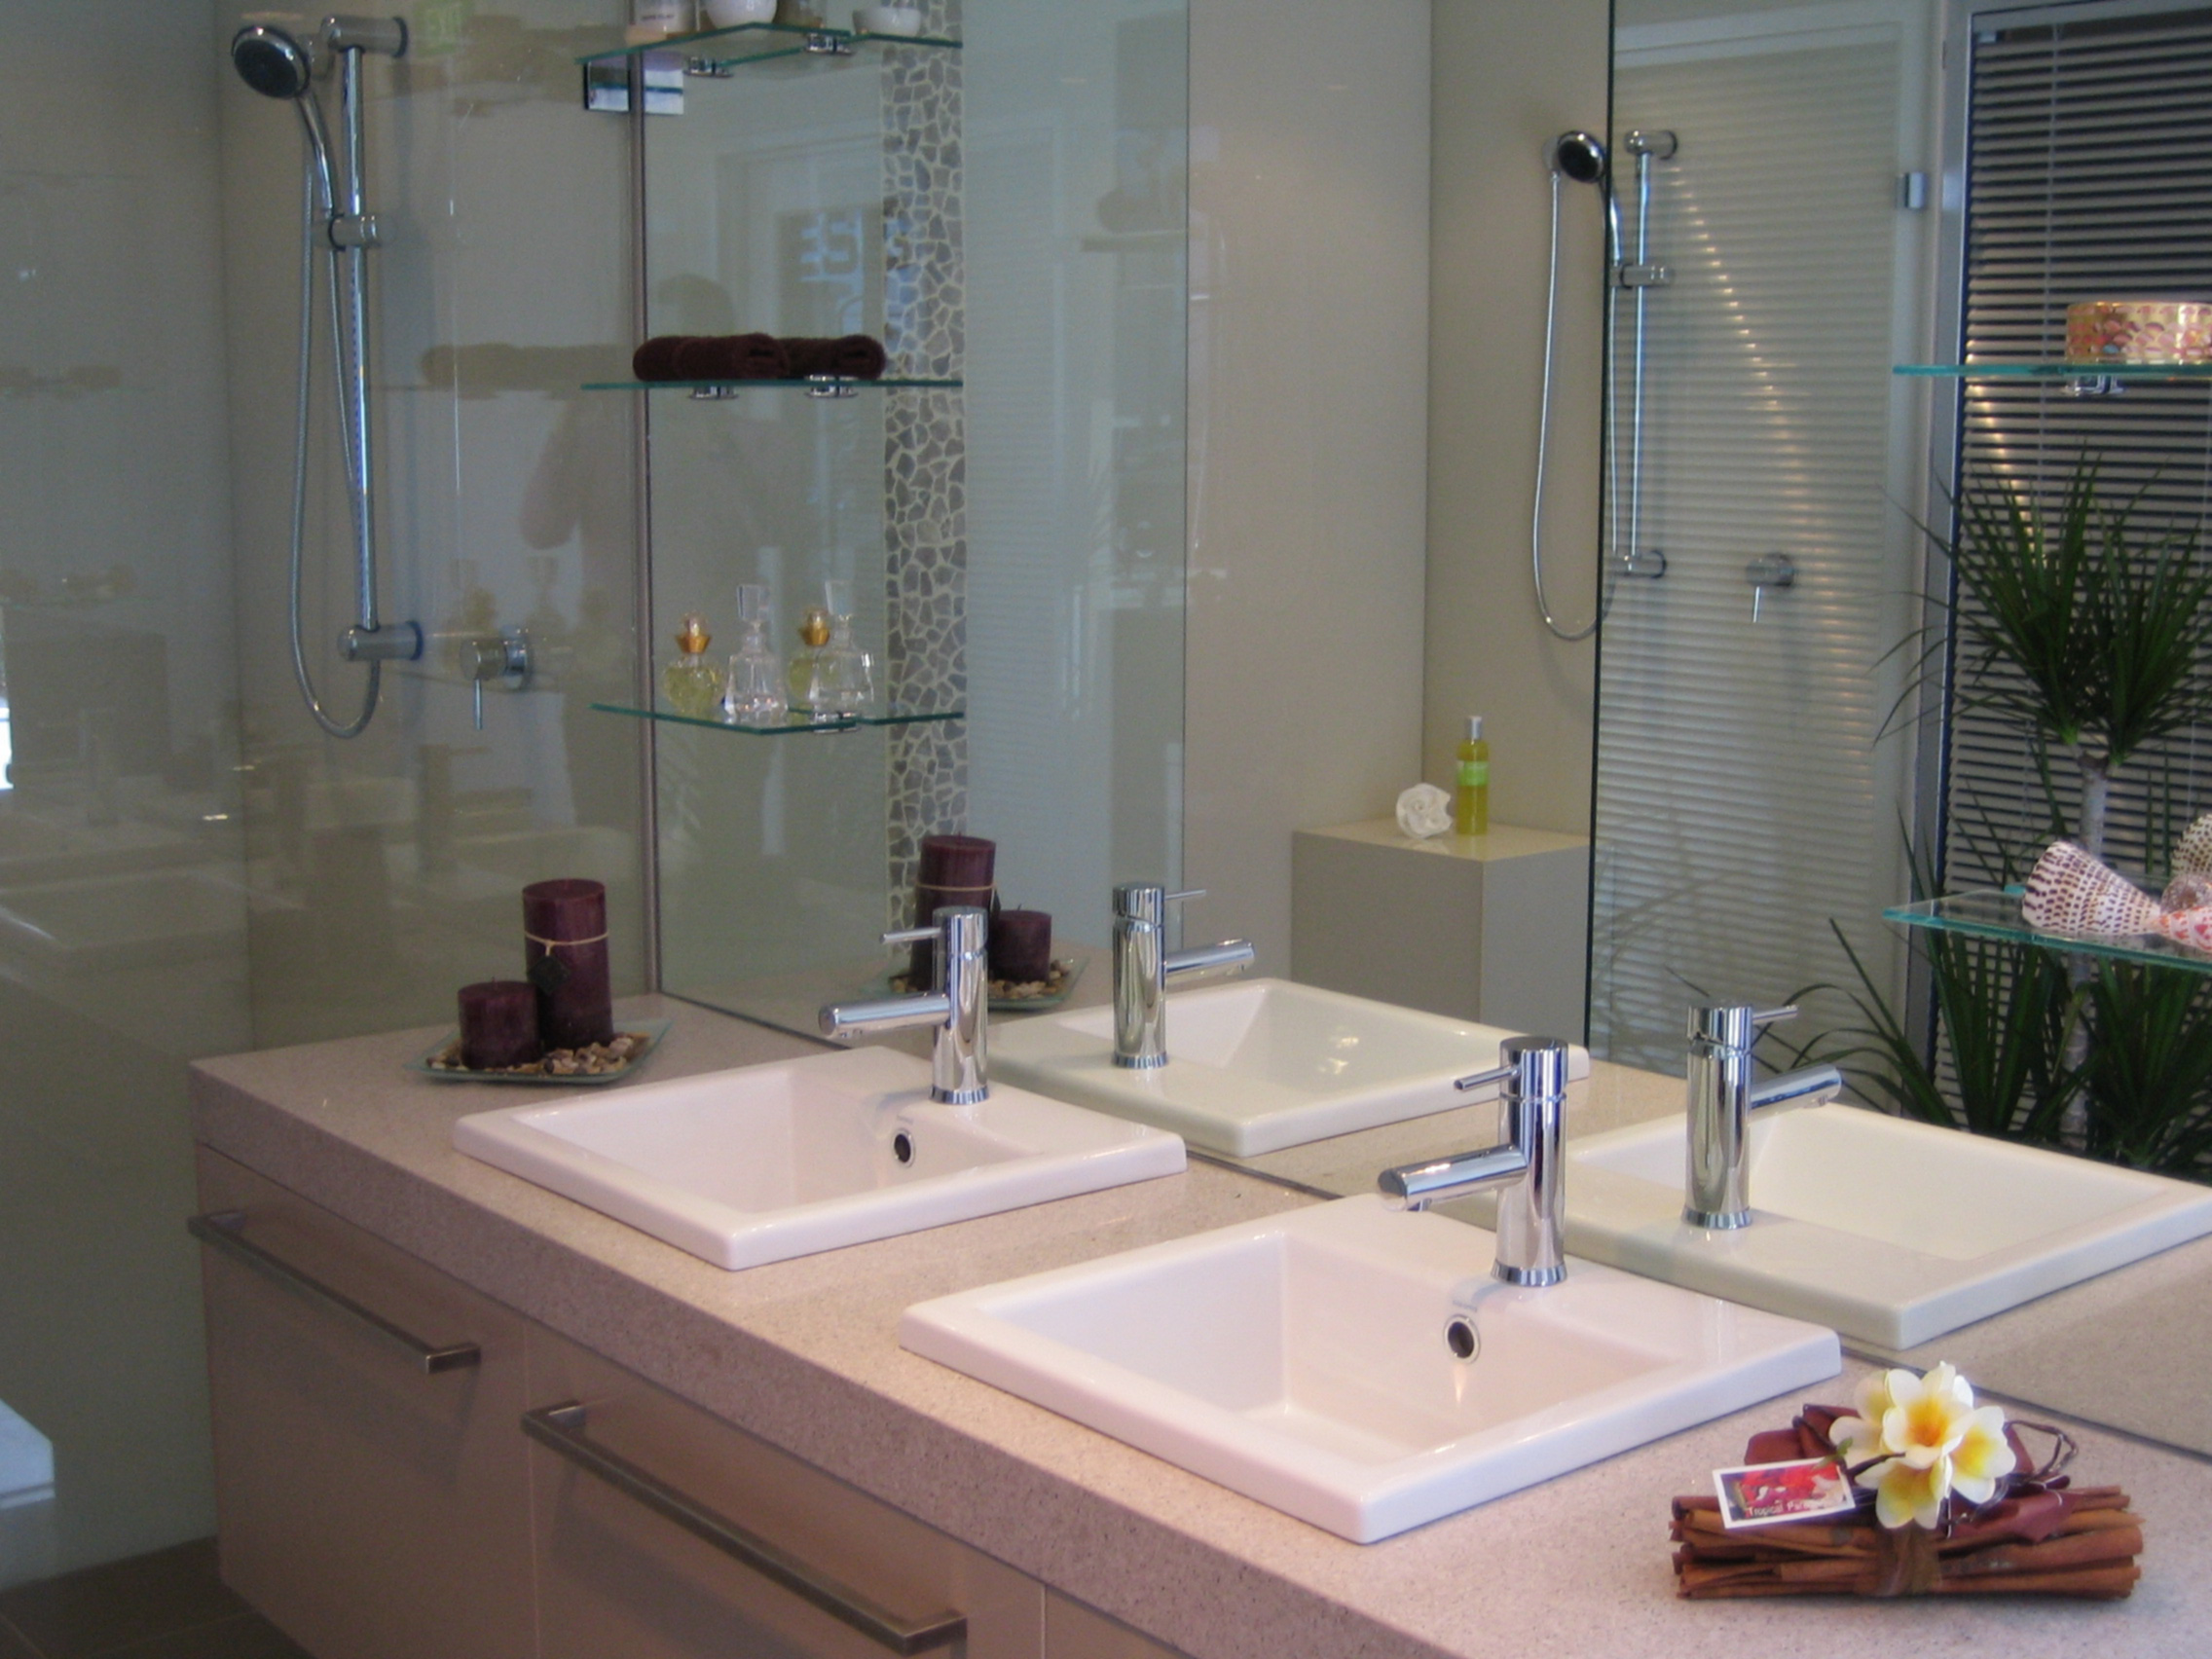 Designline kitchens and bathrooms dl bathroom rm1 for R f bathrooms and kitchens